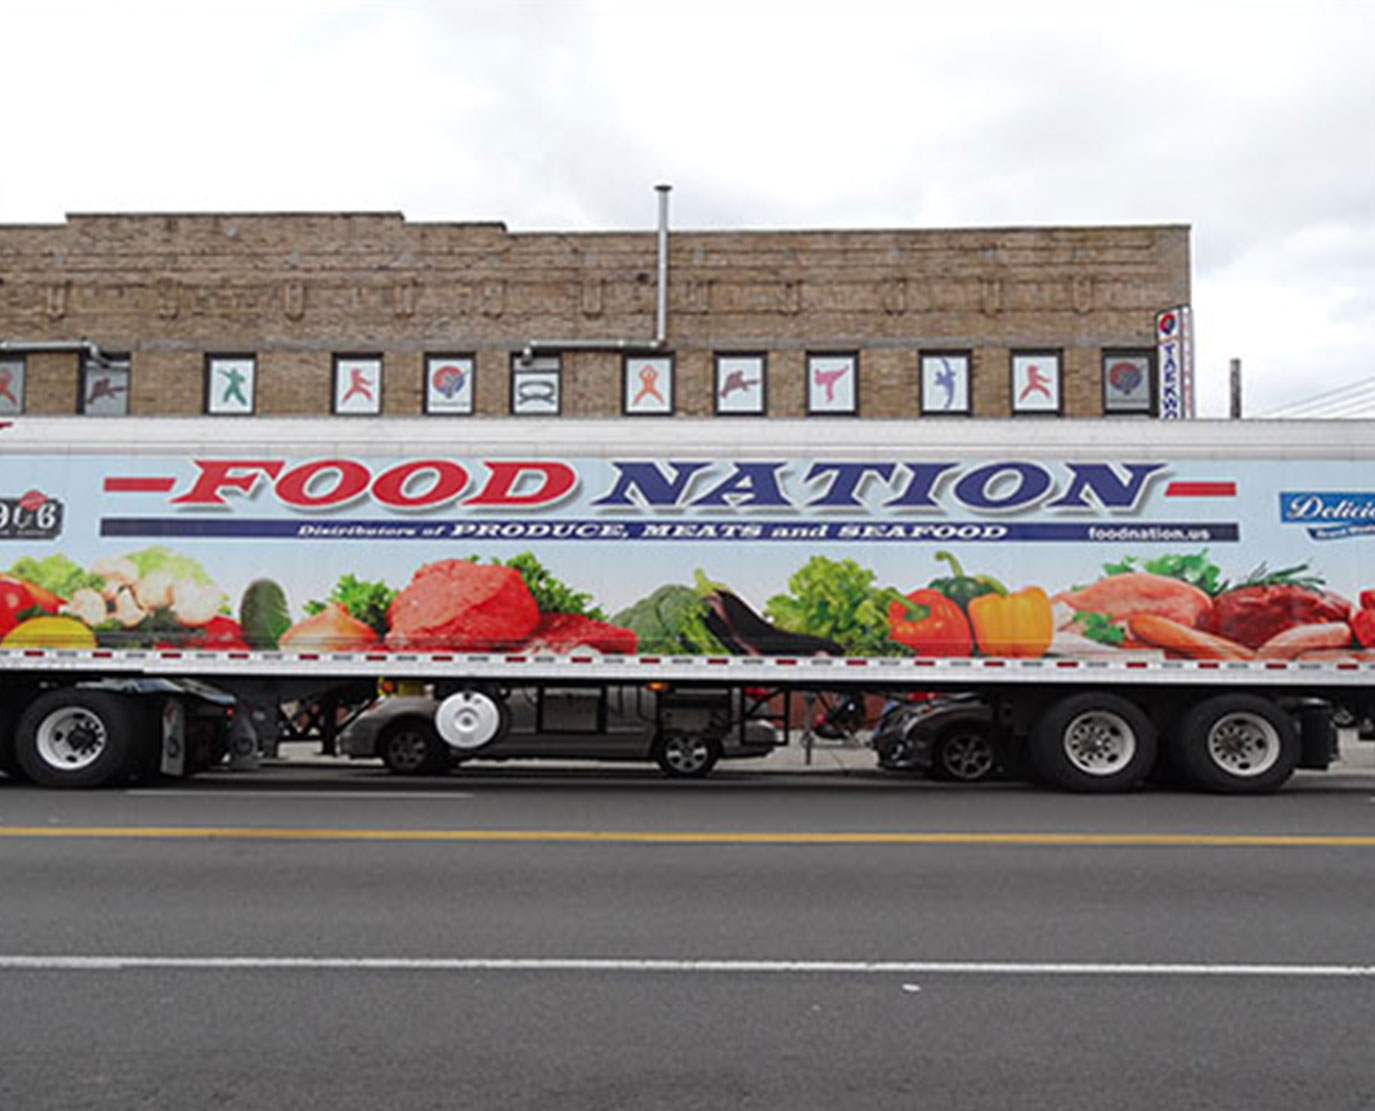 Full Trailer Wrapping